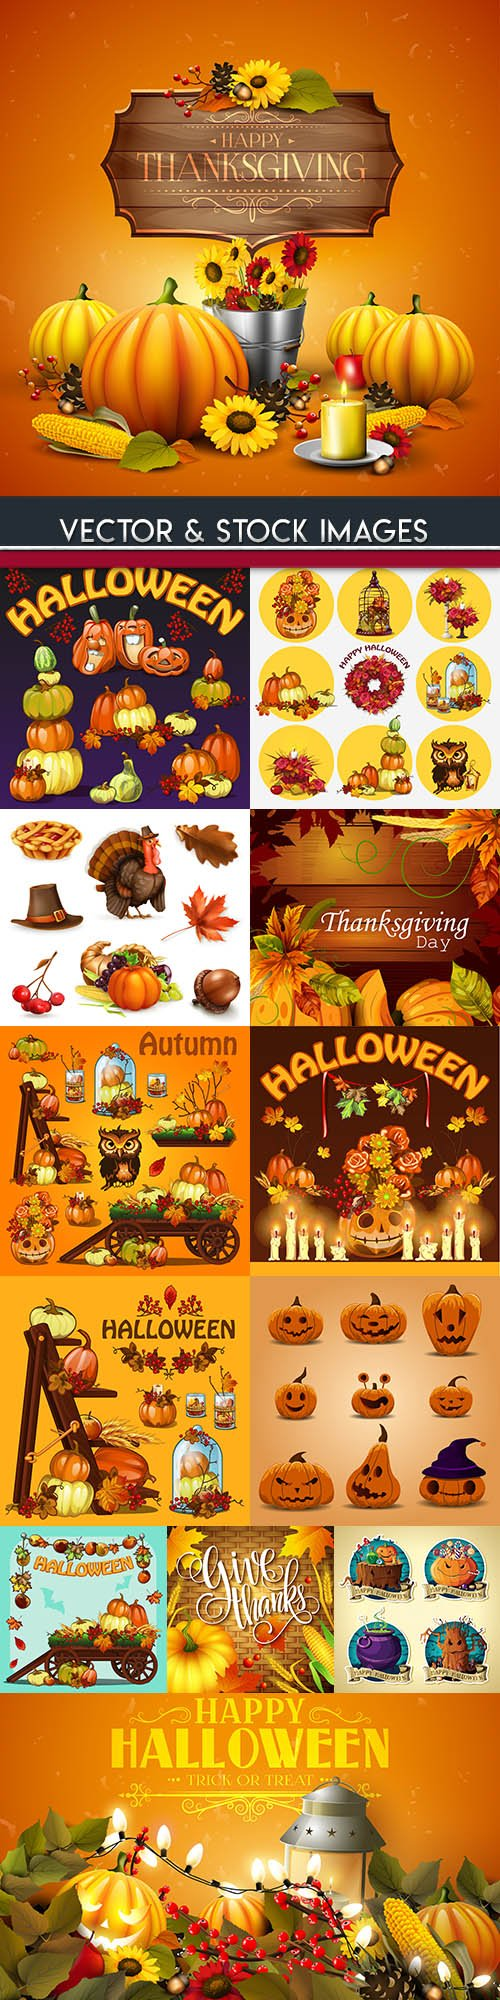 Happy Halloween holiday illustration collection 38